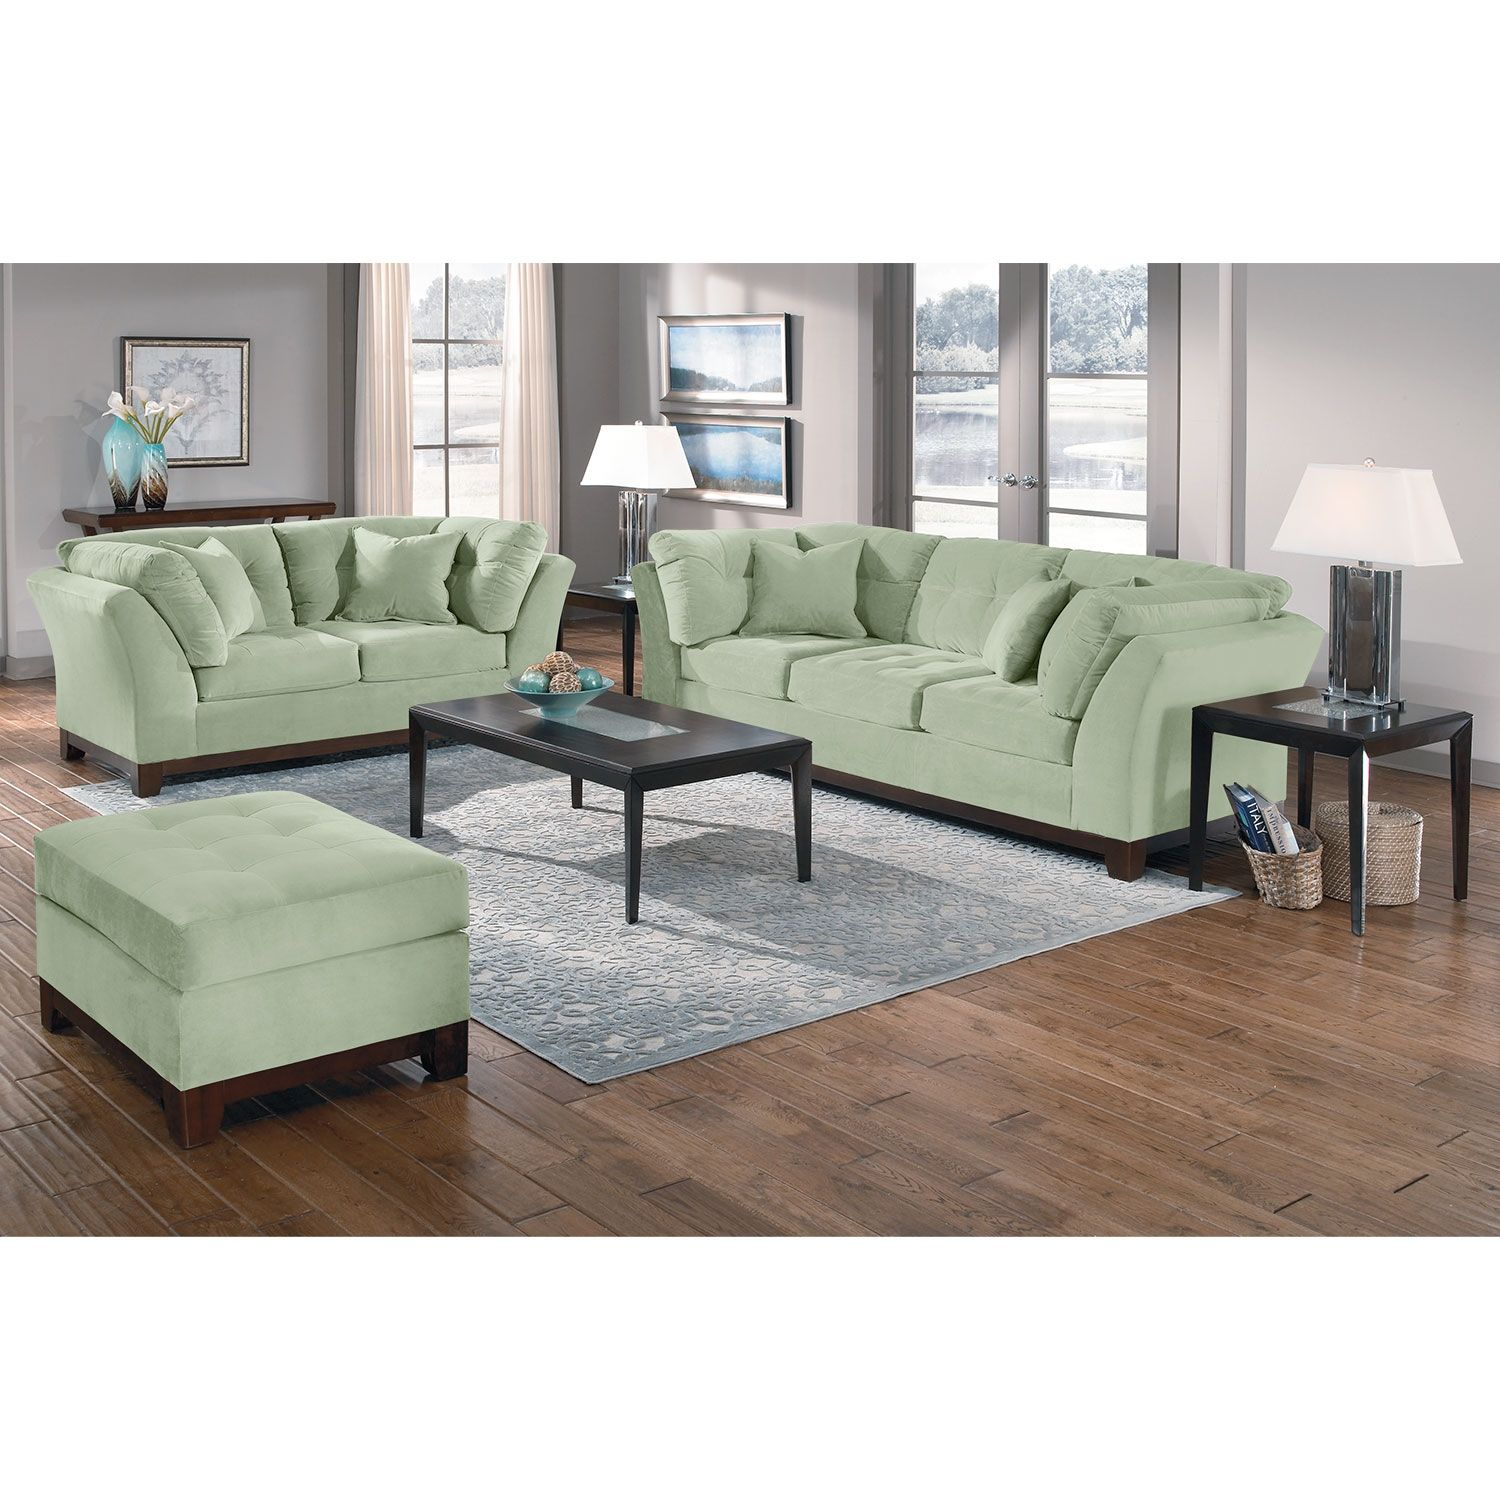 Take Comfort The Top Notch Seating Comfort Of The Sebring Living Room Collection Is Matched Only By Its Furniture Value City Furniture Living Room Collections #value #city #living #room #tables